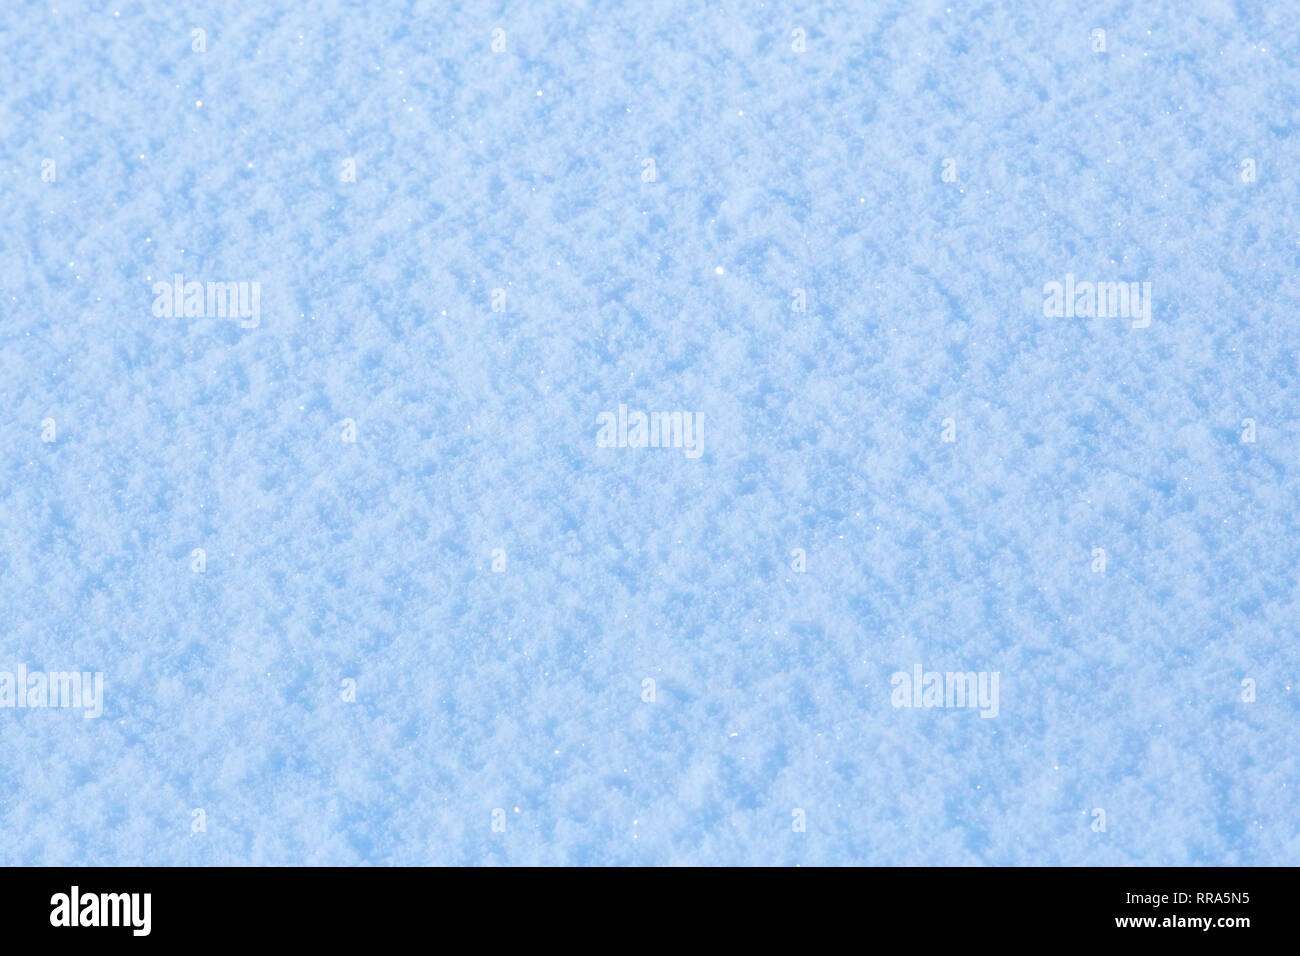 macro of glittering natural snow surface texture - Stock Image